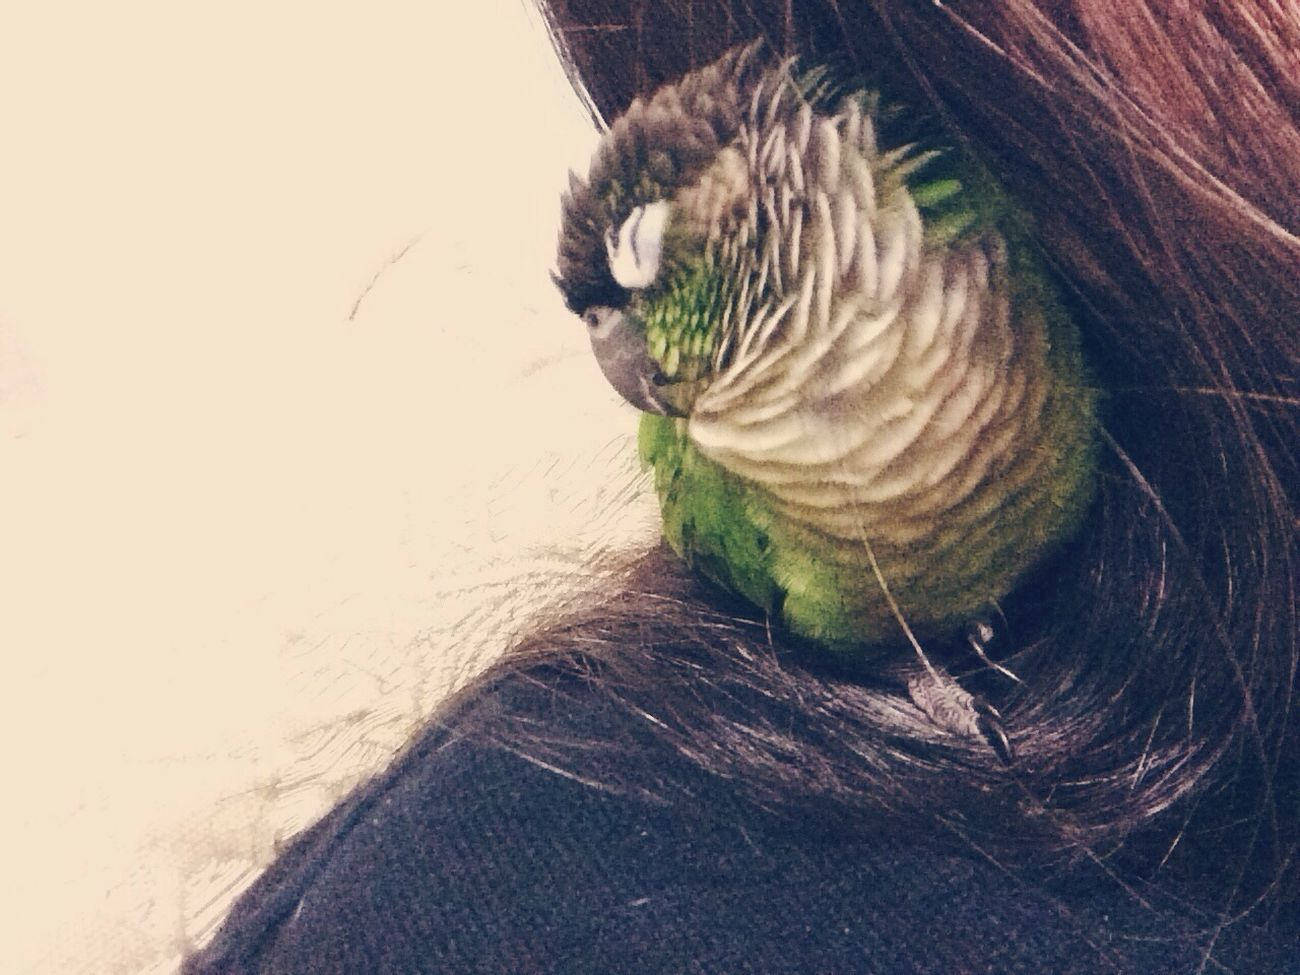 rainy day nap ?? Animals Birds Conure Greencheekconure